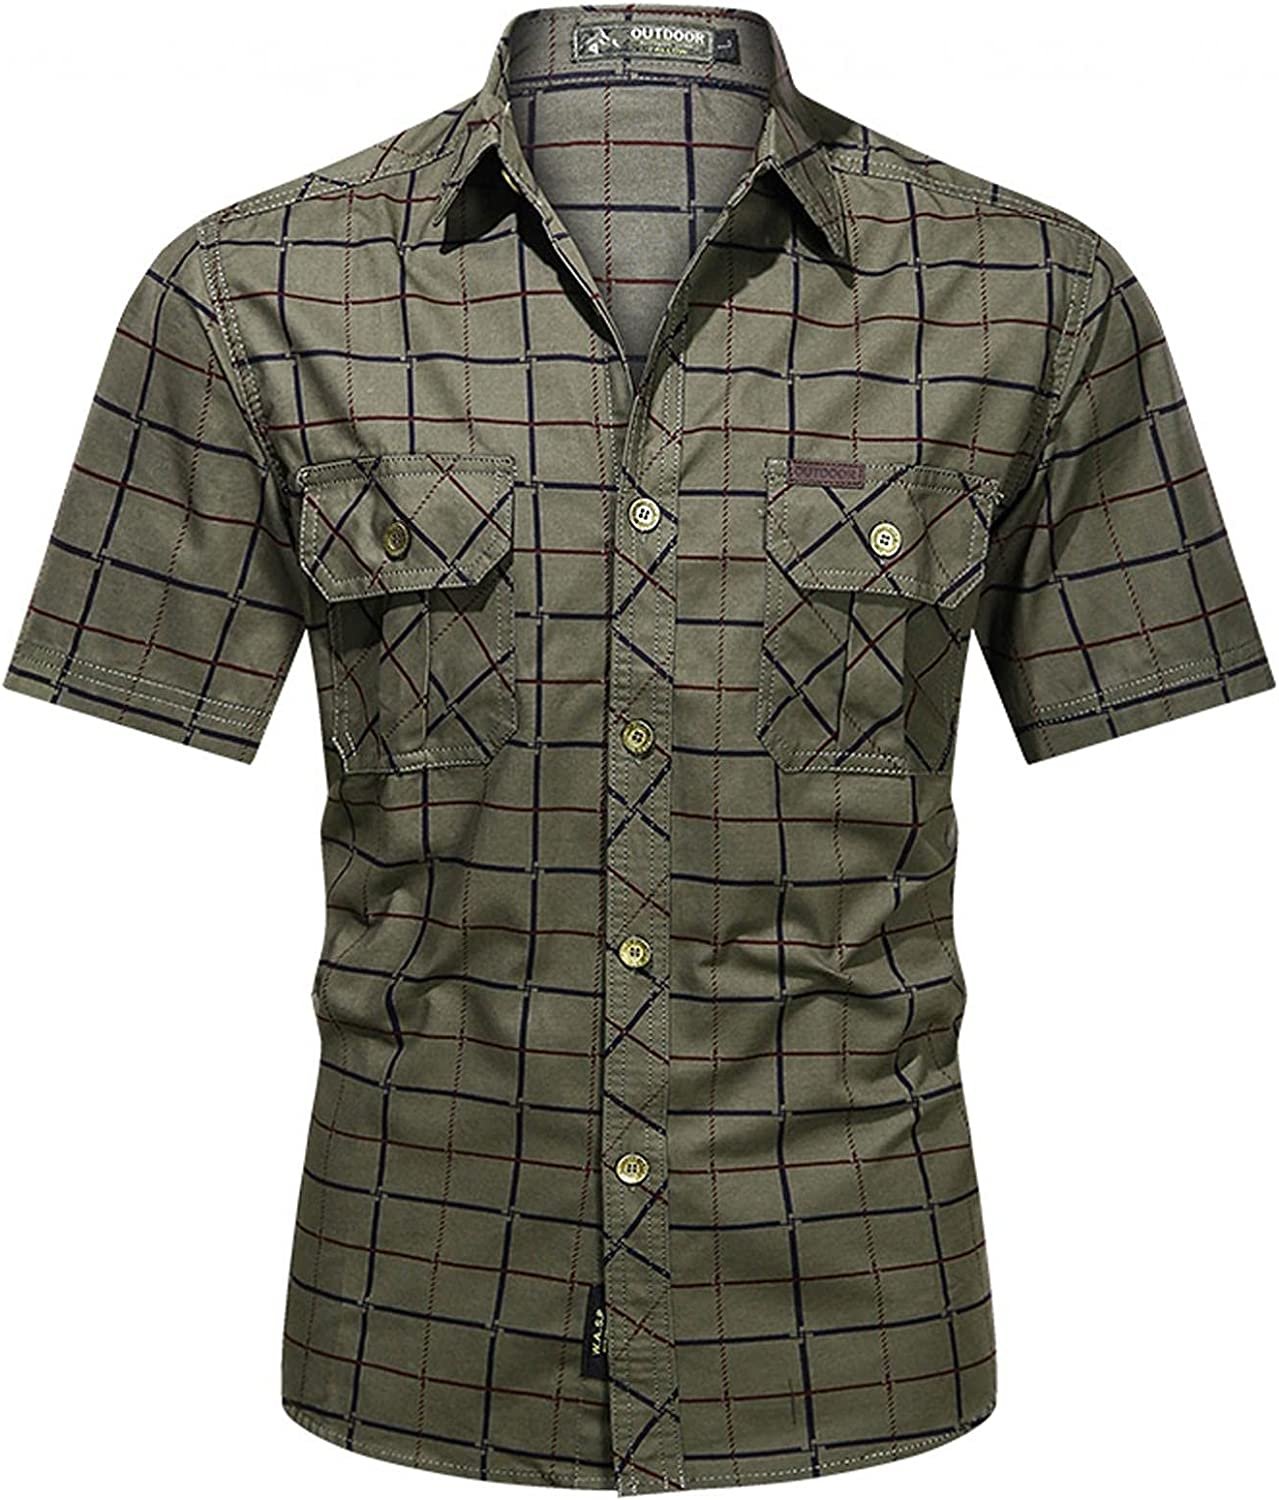 Men's Tactical Shirts Short Sleeve Button Up Camo Military Pockets Shirt Slim Fit Western Plaid Tops T Shirts